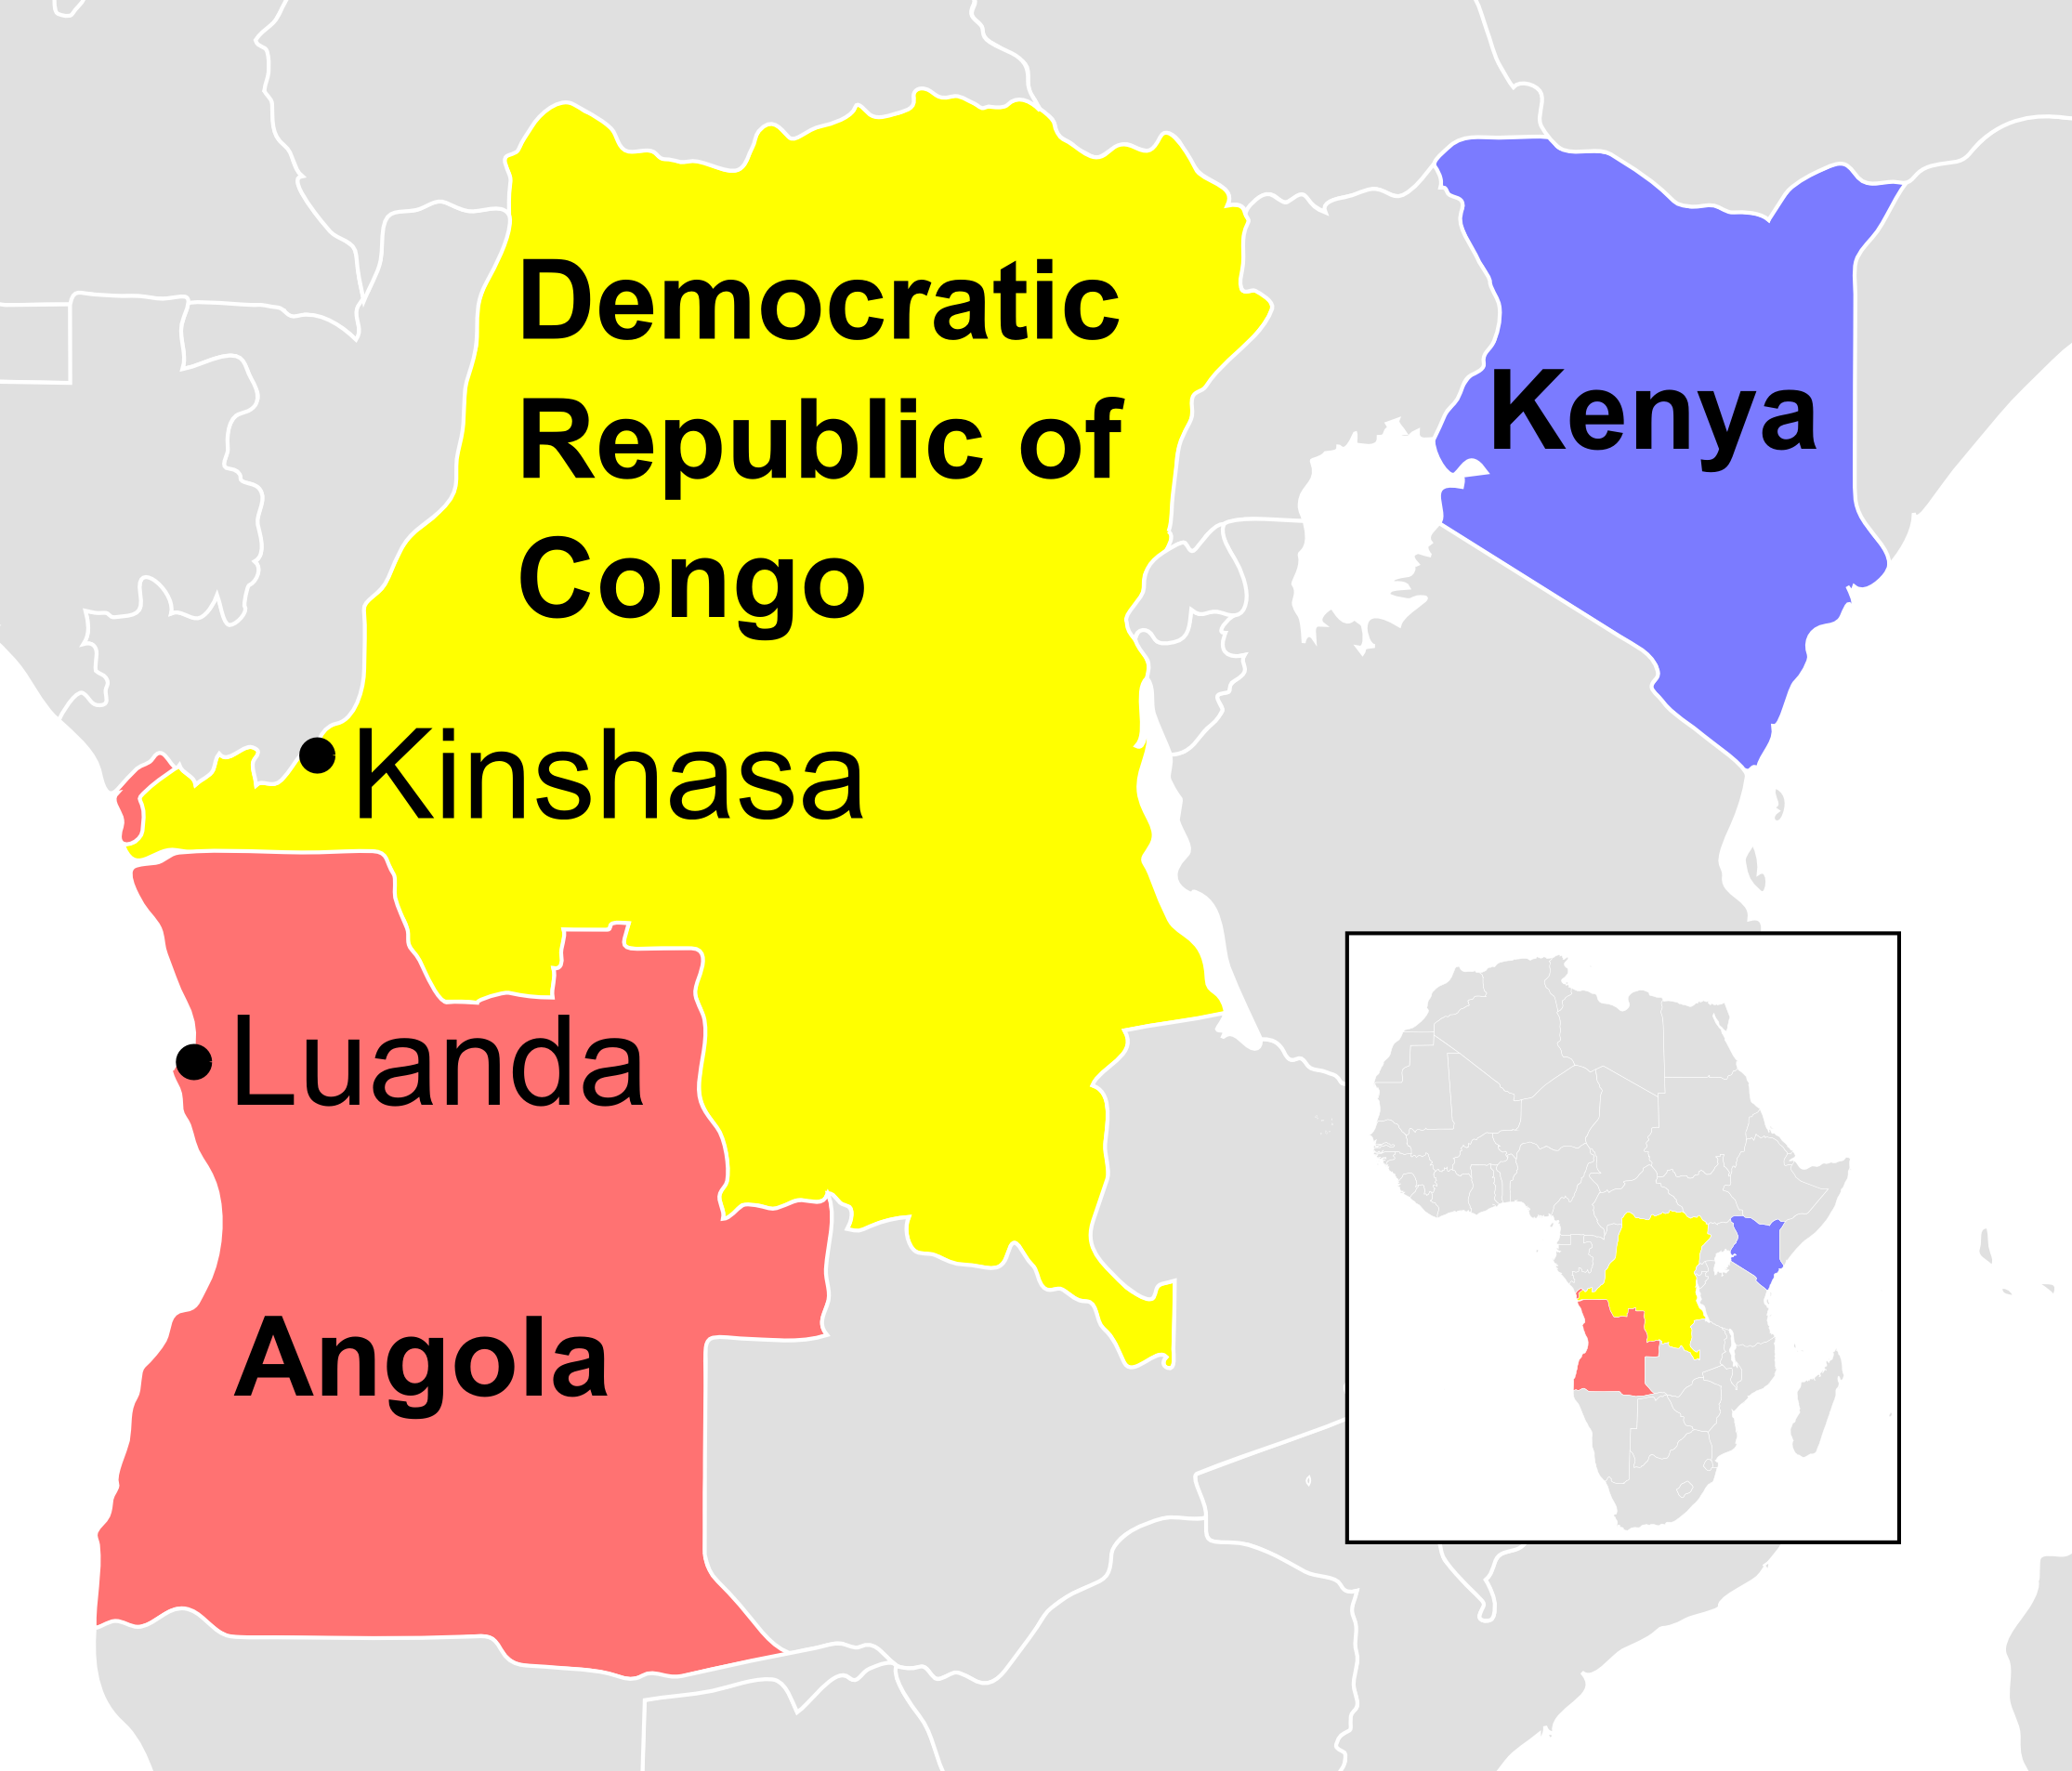 2016 Angola and DR Congo yellow fever outbreak - Wikipedia on rabies map, varicella map, typhoid fever, smallpox map, typhoid map, hepatitis b map, cholera map, vaccine preventable diseases map, river blindness map, yellow marker map, tuberculosis map, meningitis map, dengue fever, dark side of the moon map, west nile virus, parkinson's disease map, bubonic plague, trichinosis map, tetanus map, scarlet fever, zika virus map, hantavirus map, polio map, epilepsy map, malaria map,